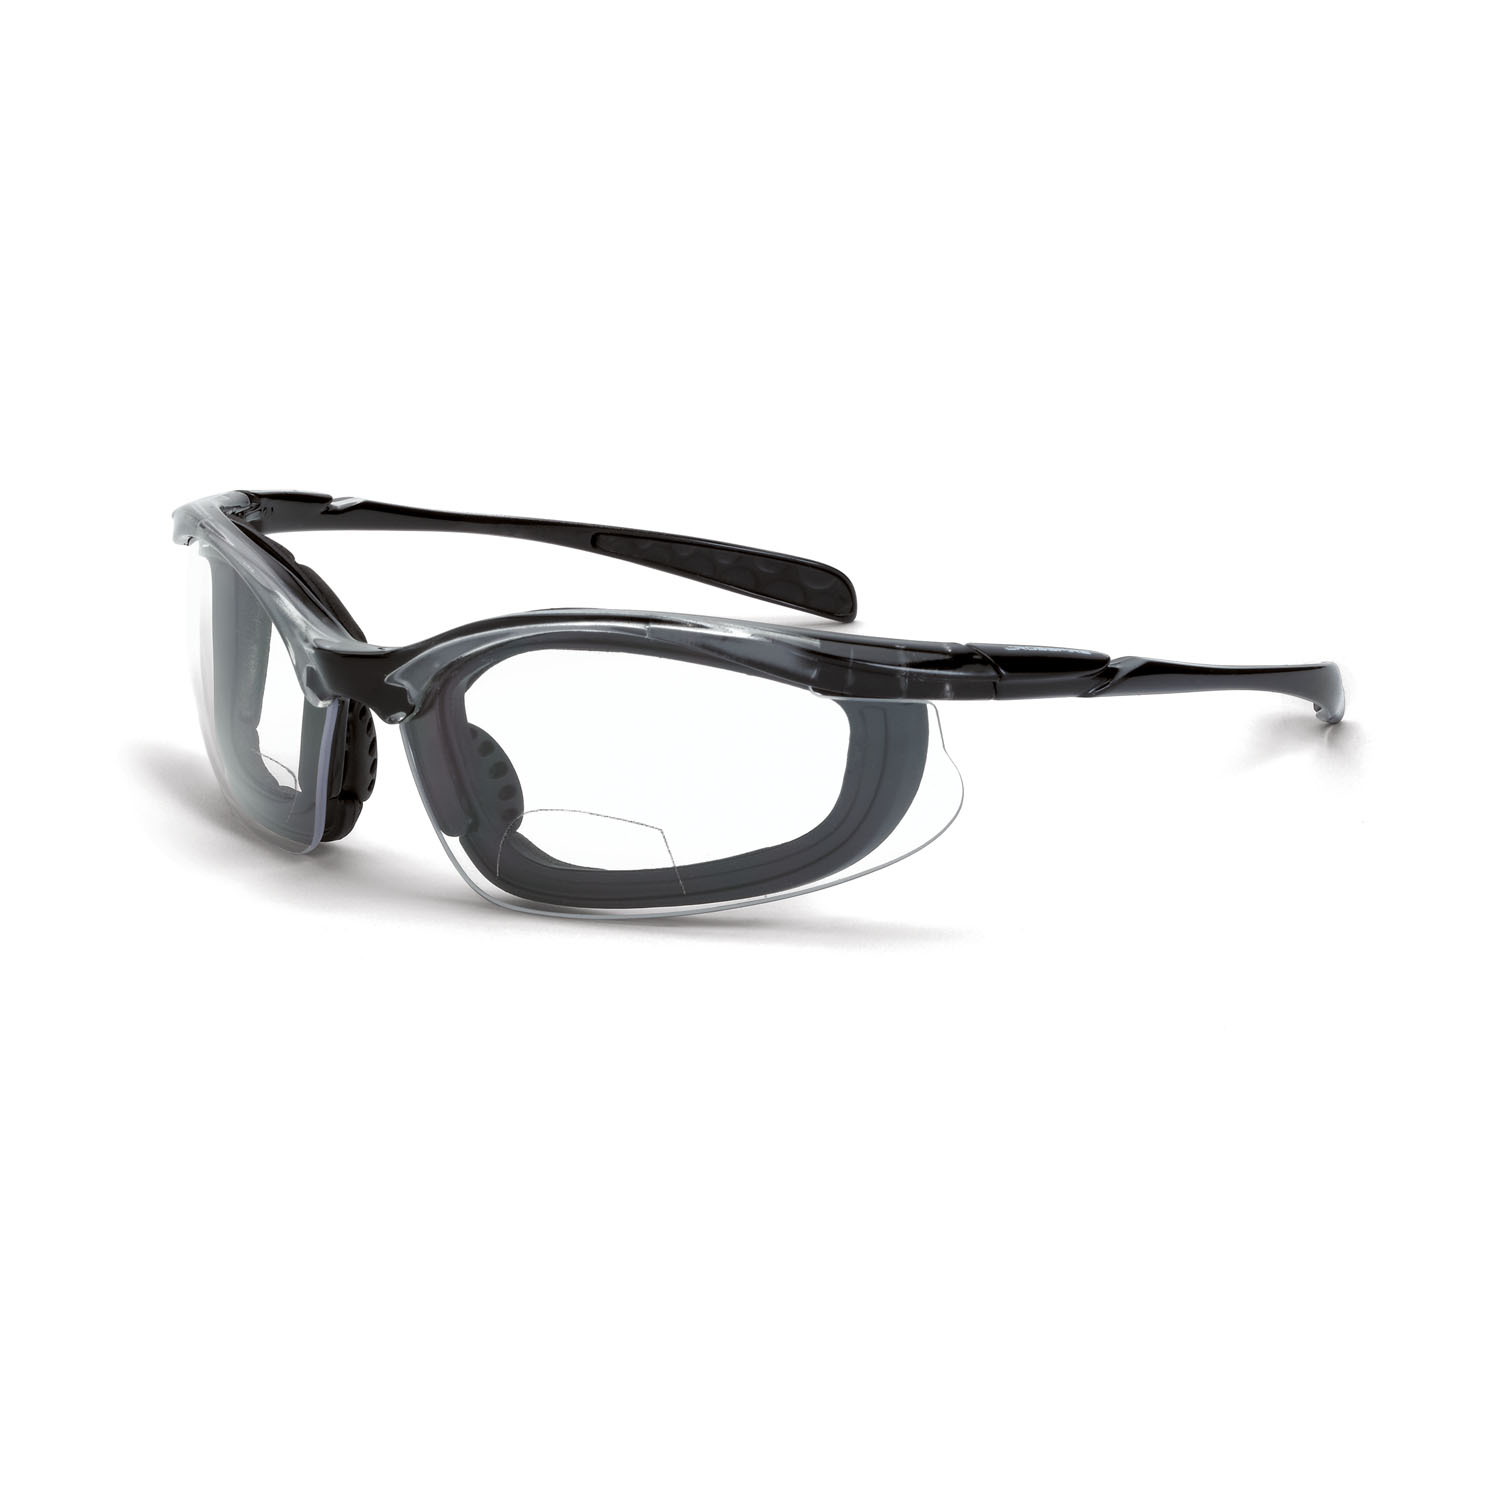 Crossfire Concept Foam Lined Bifocal Safety Eyewear